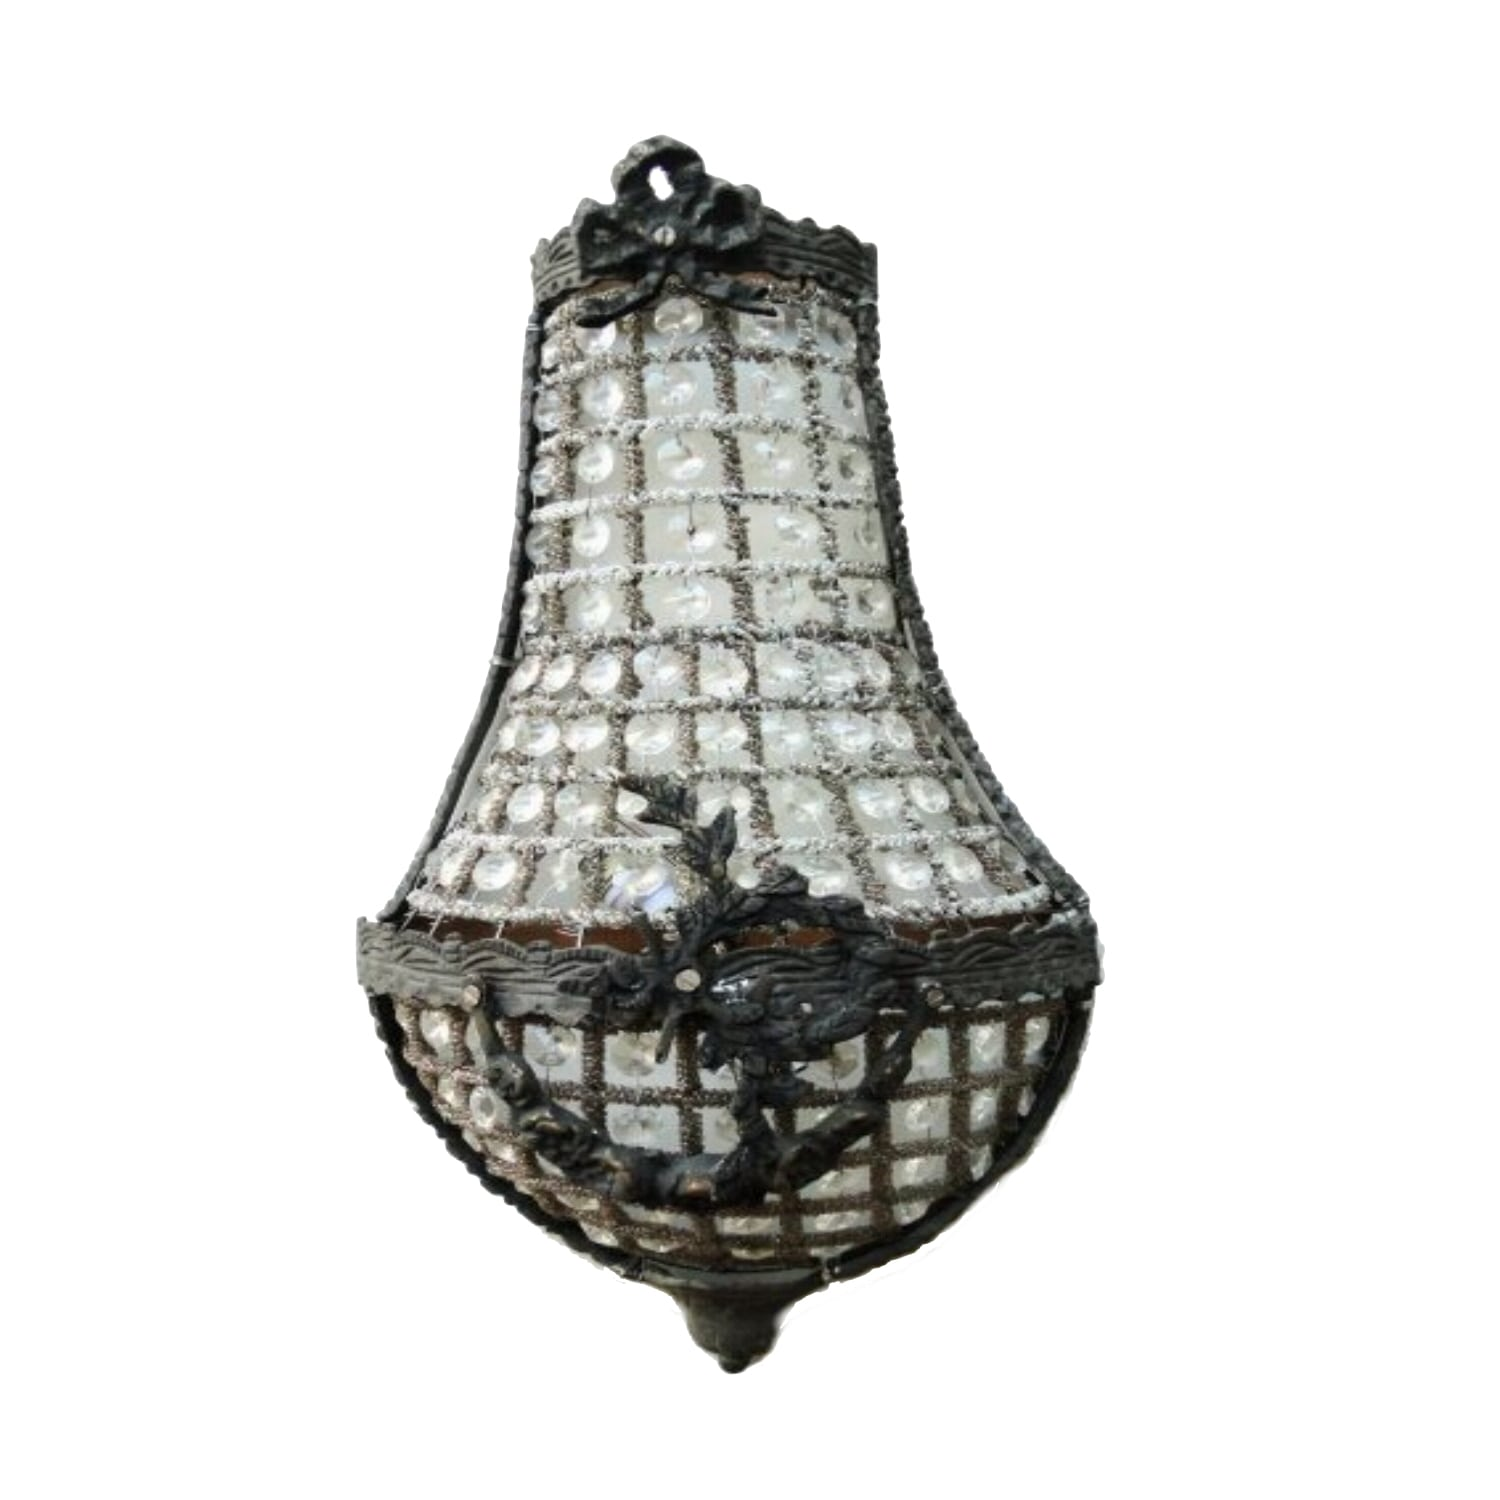 elk free gold black boudreaux product sconce in garden overstock and matte shipping antique home wall today light lights